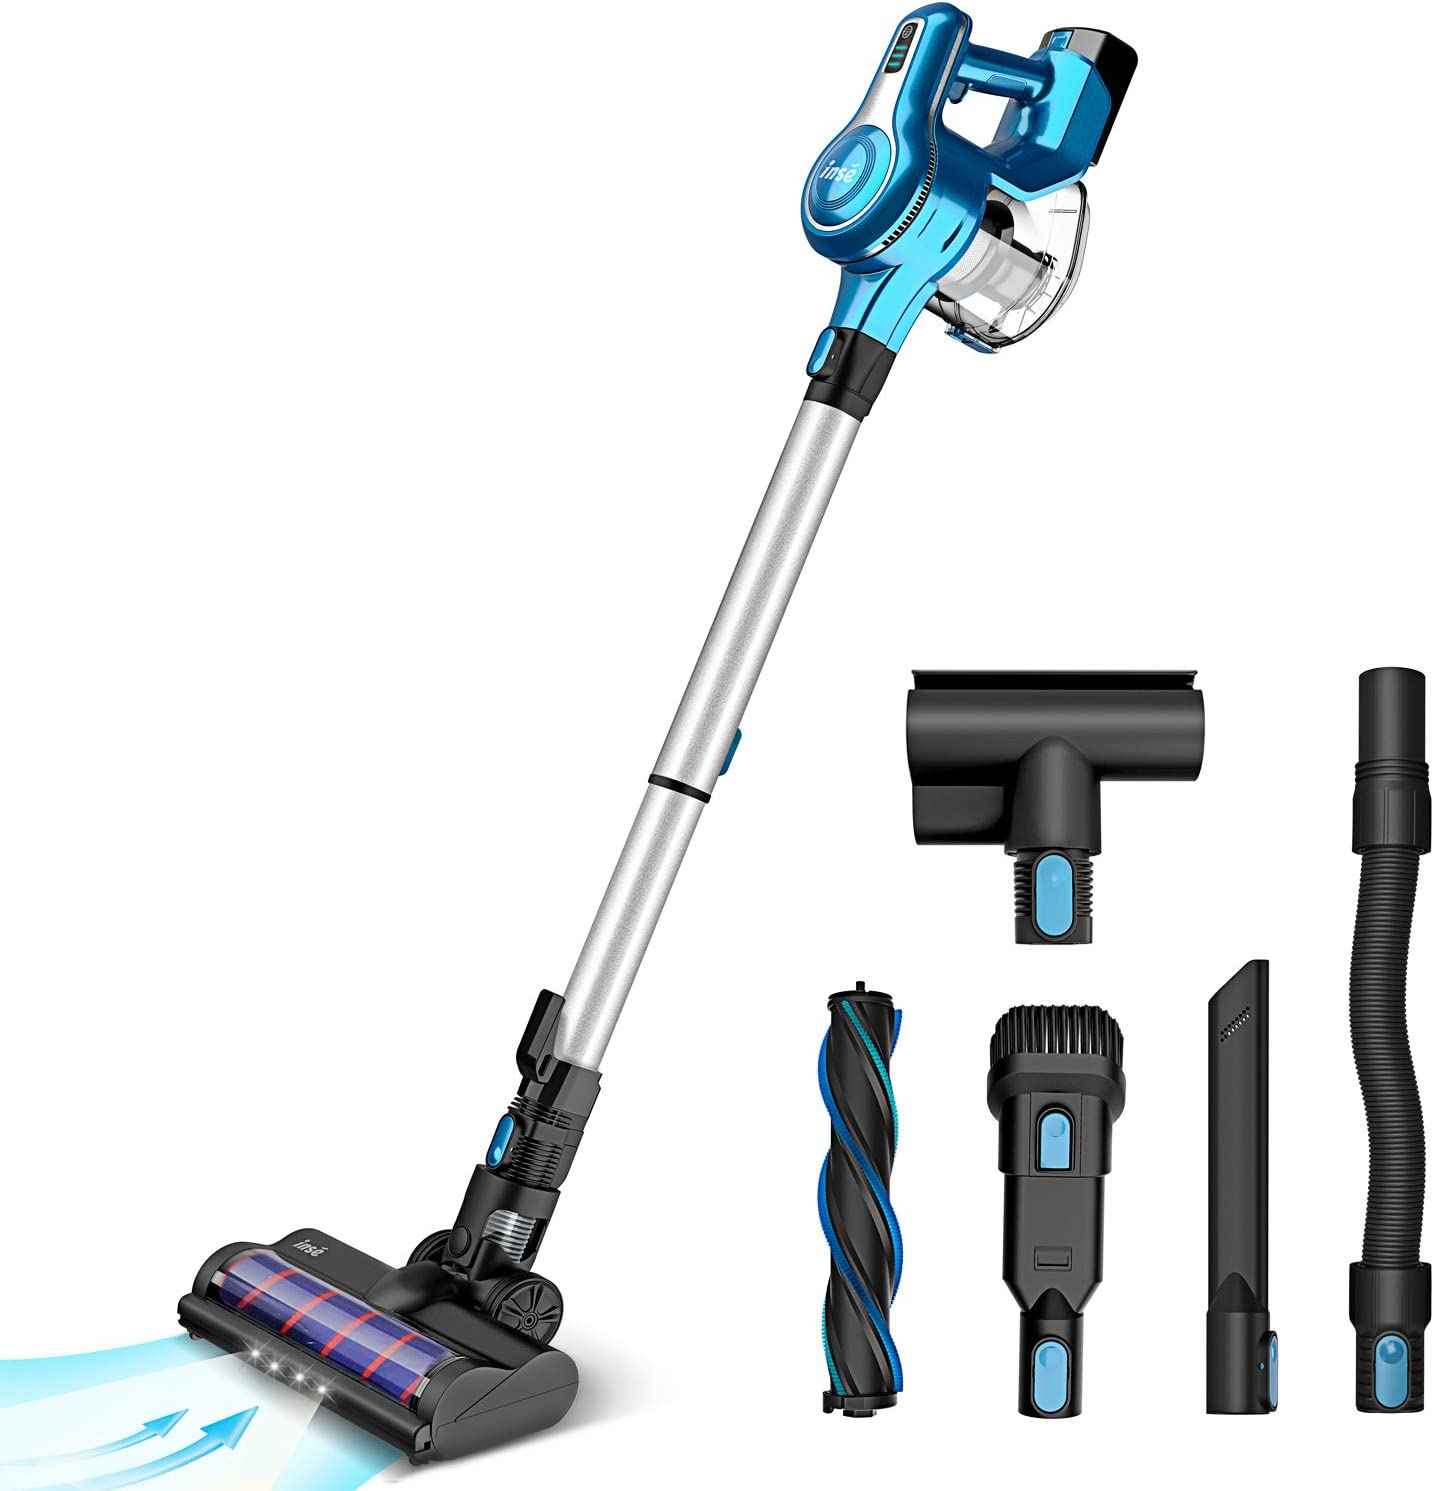 INSE Cordless Stick Vacuum Cleaner 23KPa Powerful Suction with 250W Motor, Stick Handheld Vacuum Lightweight Quiet Rechargeable 2500mAh for Bed Car Pet Hair Hardwood Floor Carpet - S6